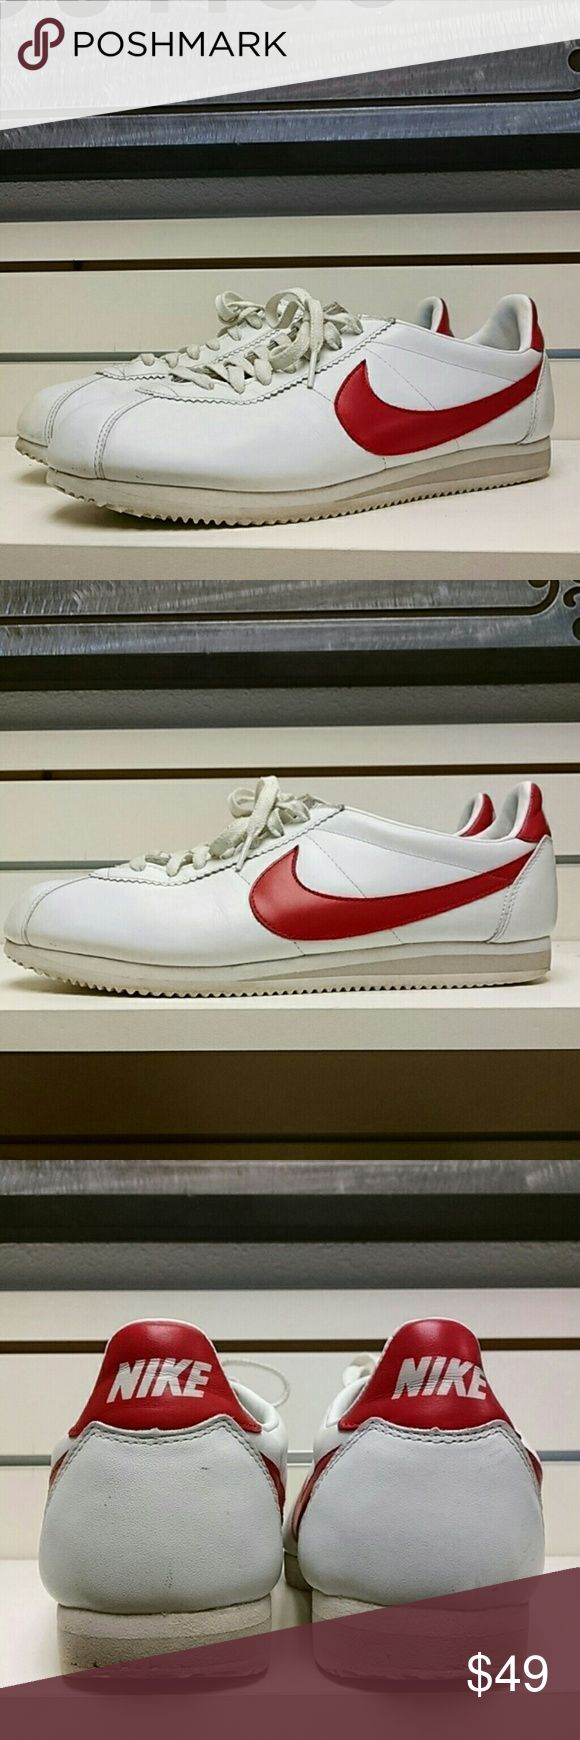 Nike Classic Cortez Leather Men's size 12 Nike Classic Cortez Leather Men's size 12. Leather uppers in excellent condition and soles only show very little wear in heels but basically in excellent condition. Nike Shoes Sneakers